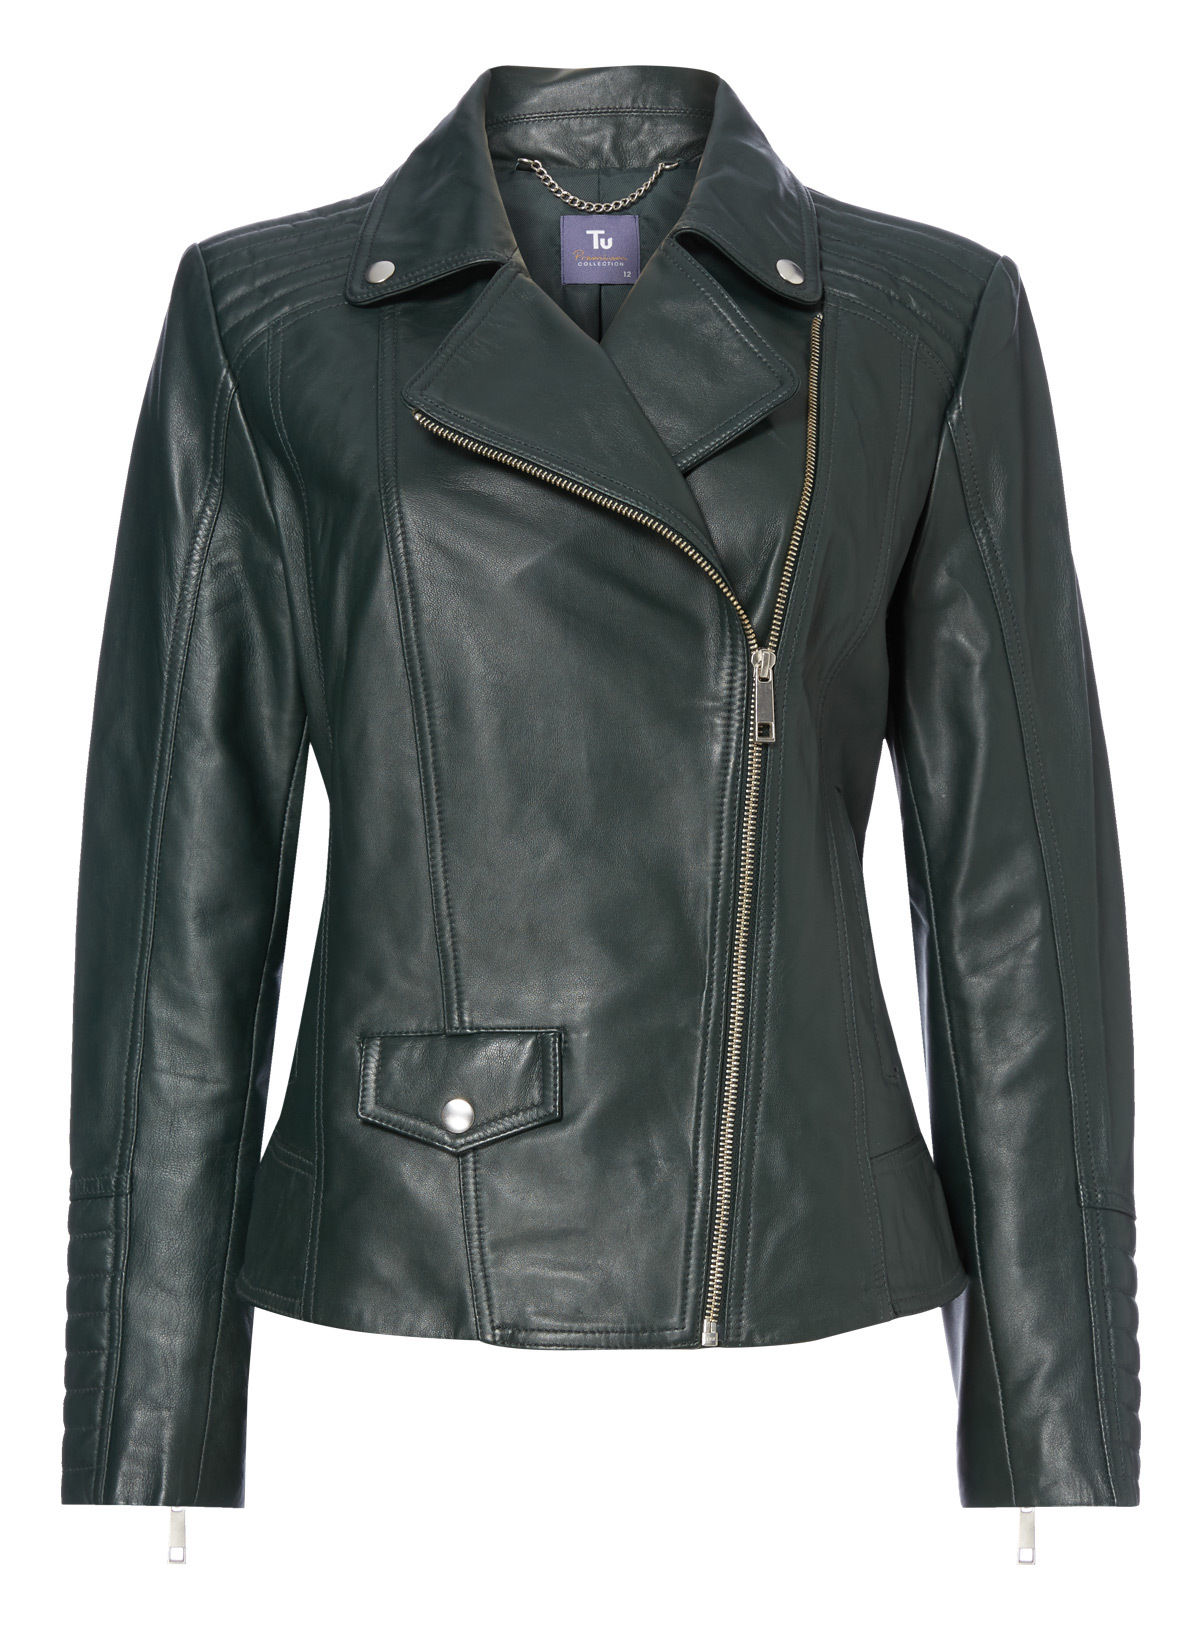 Womens Premium Green Leather Jacket | Tu clothing